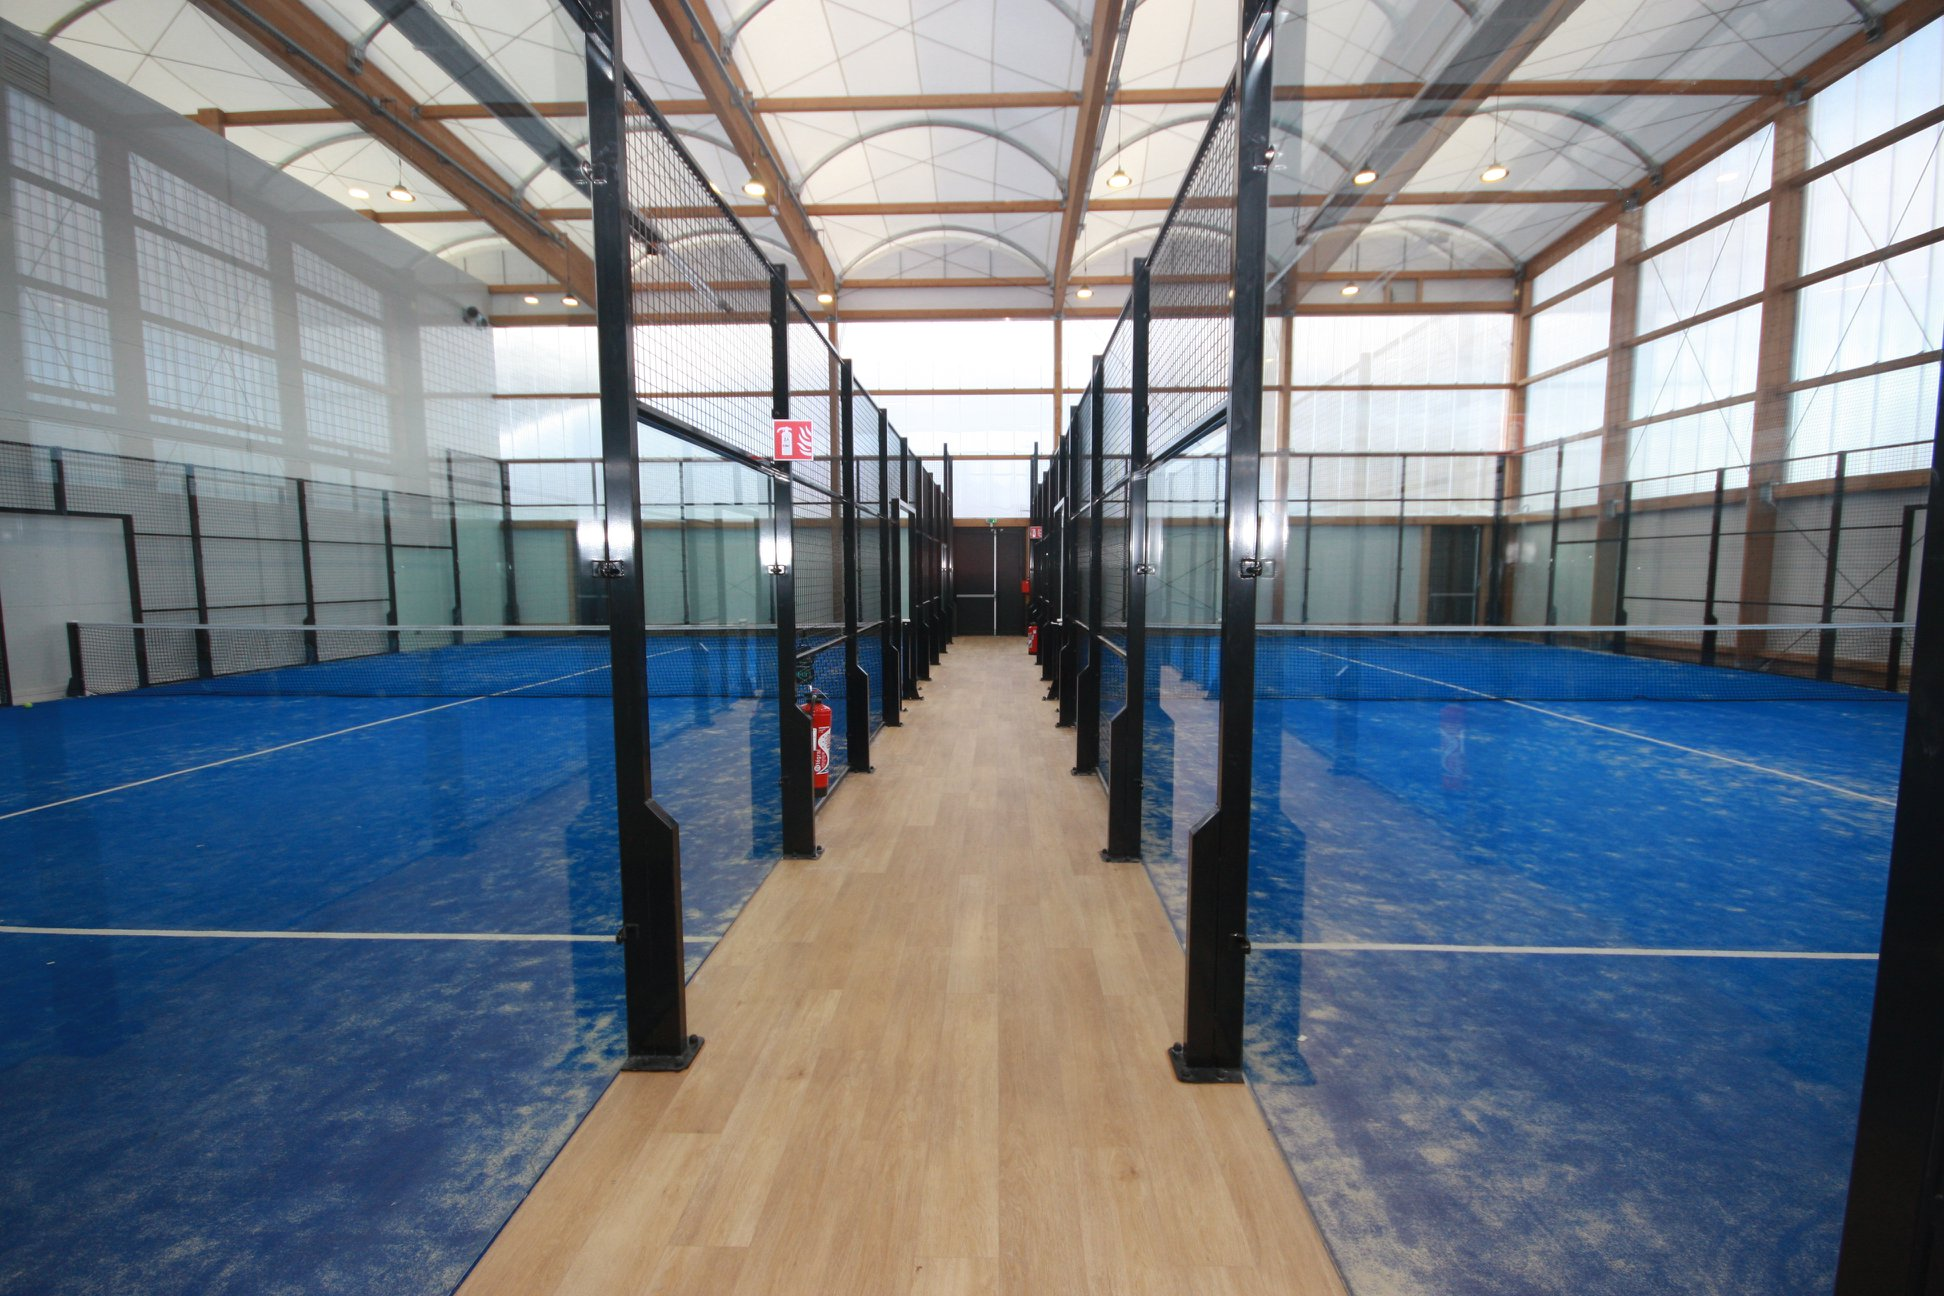 Exhibition Padel au Forest Hill Marnes-la-Coquette